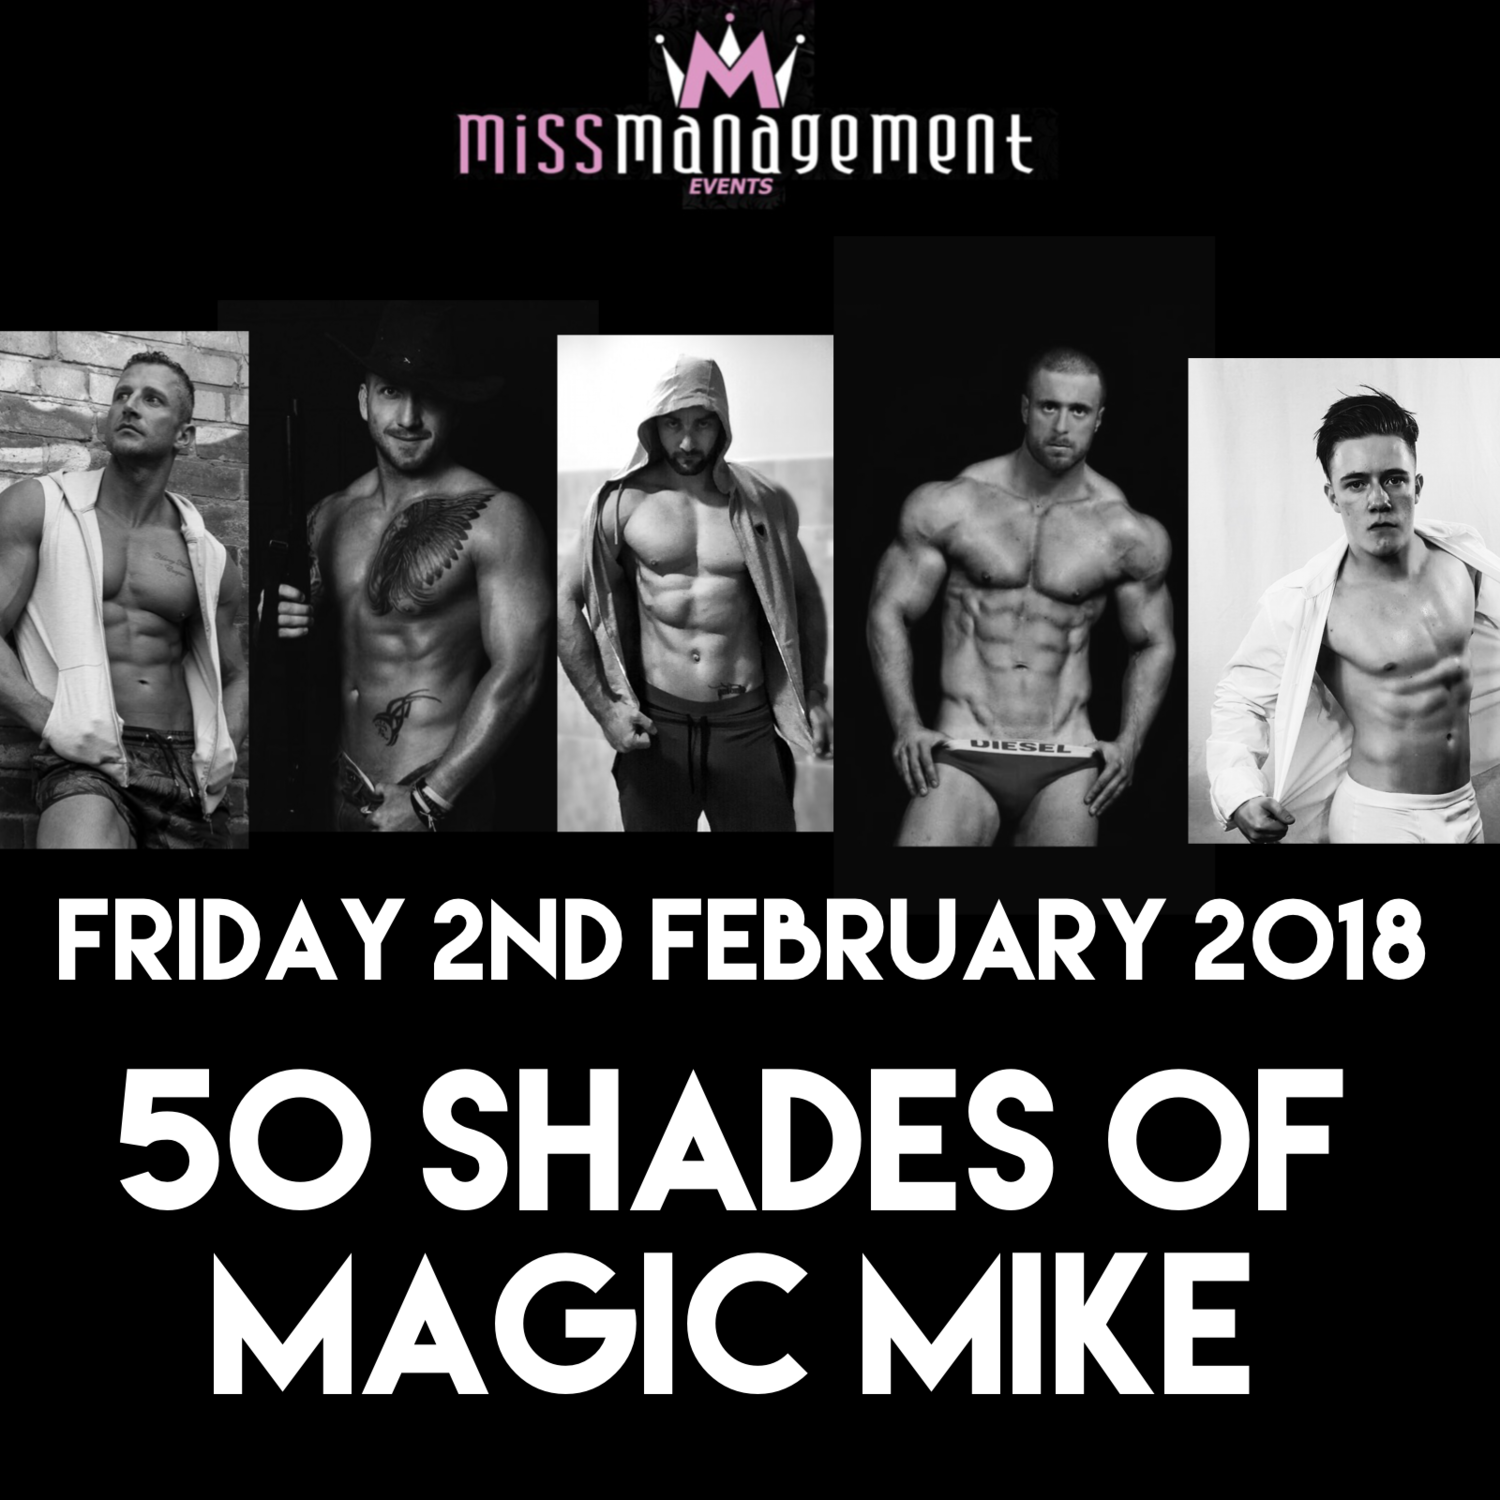 (MM19) '50 Shades of Magic Mike' Rows 1-15